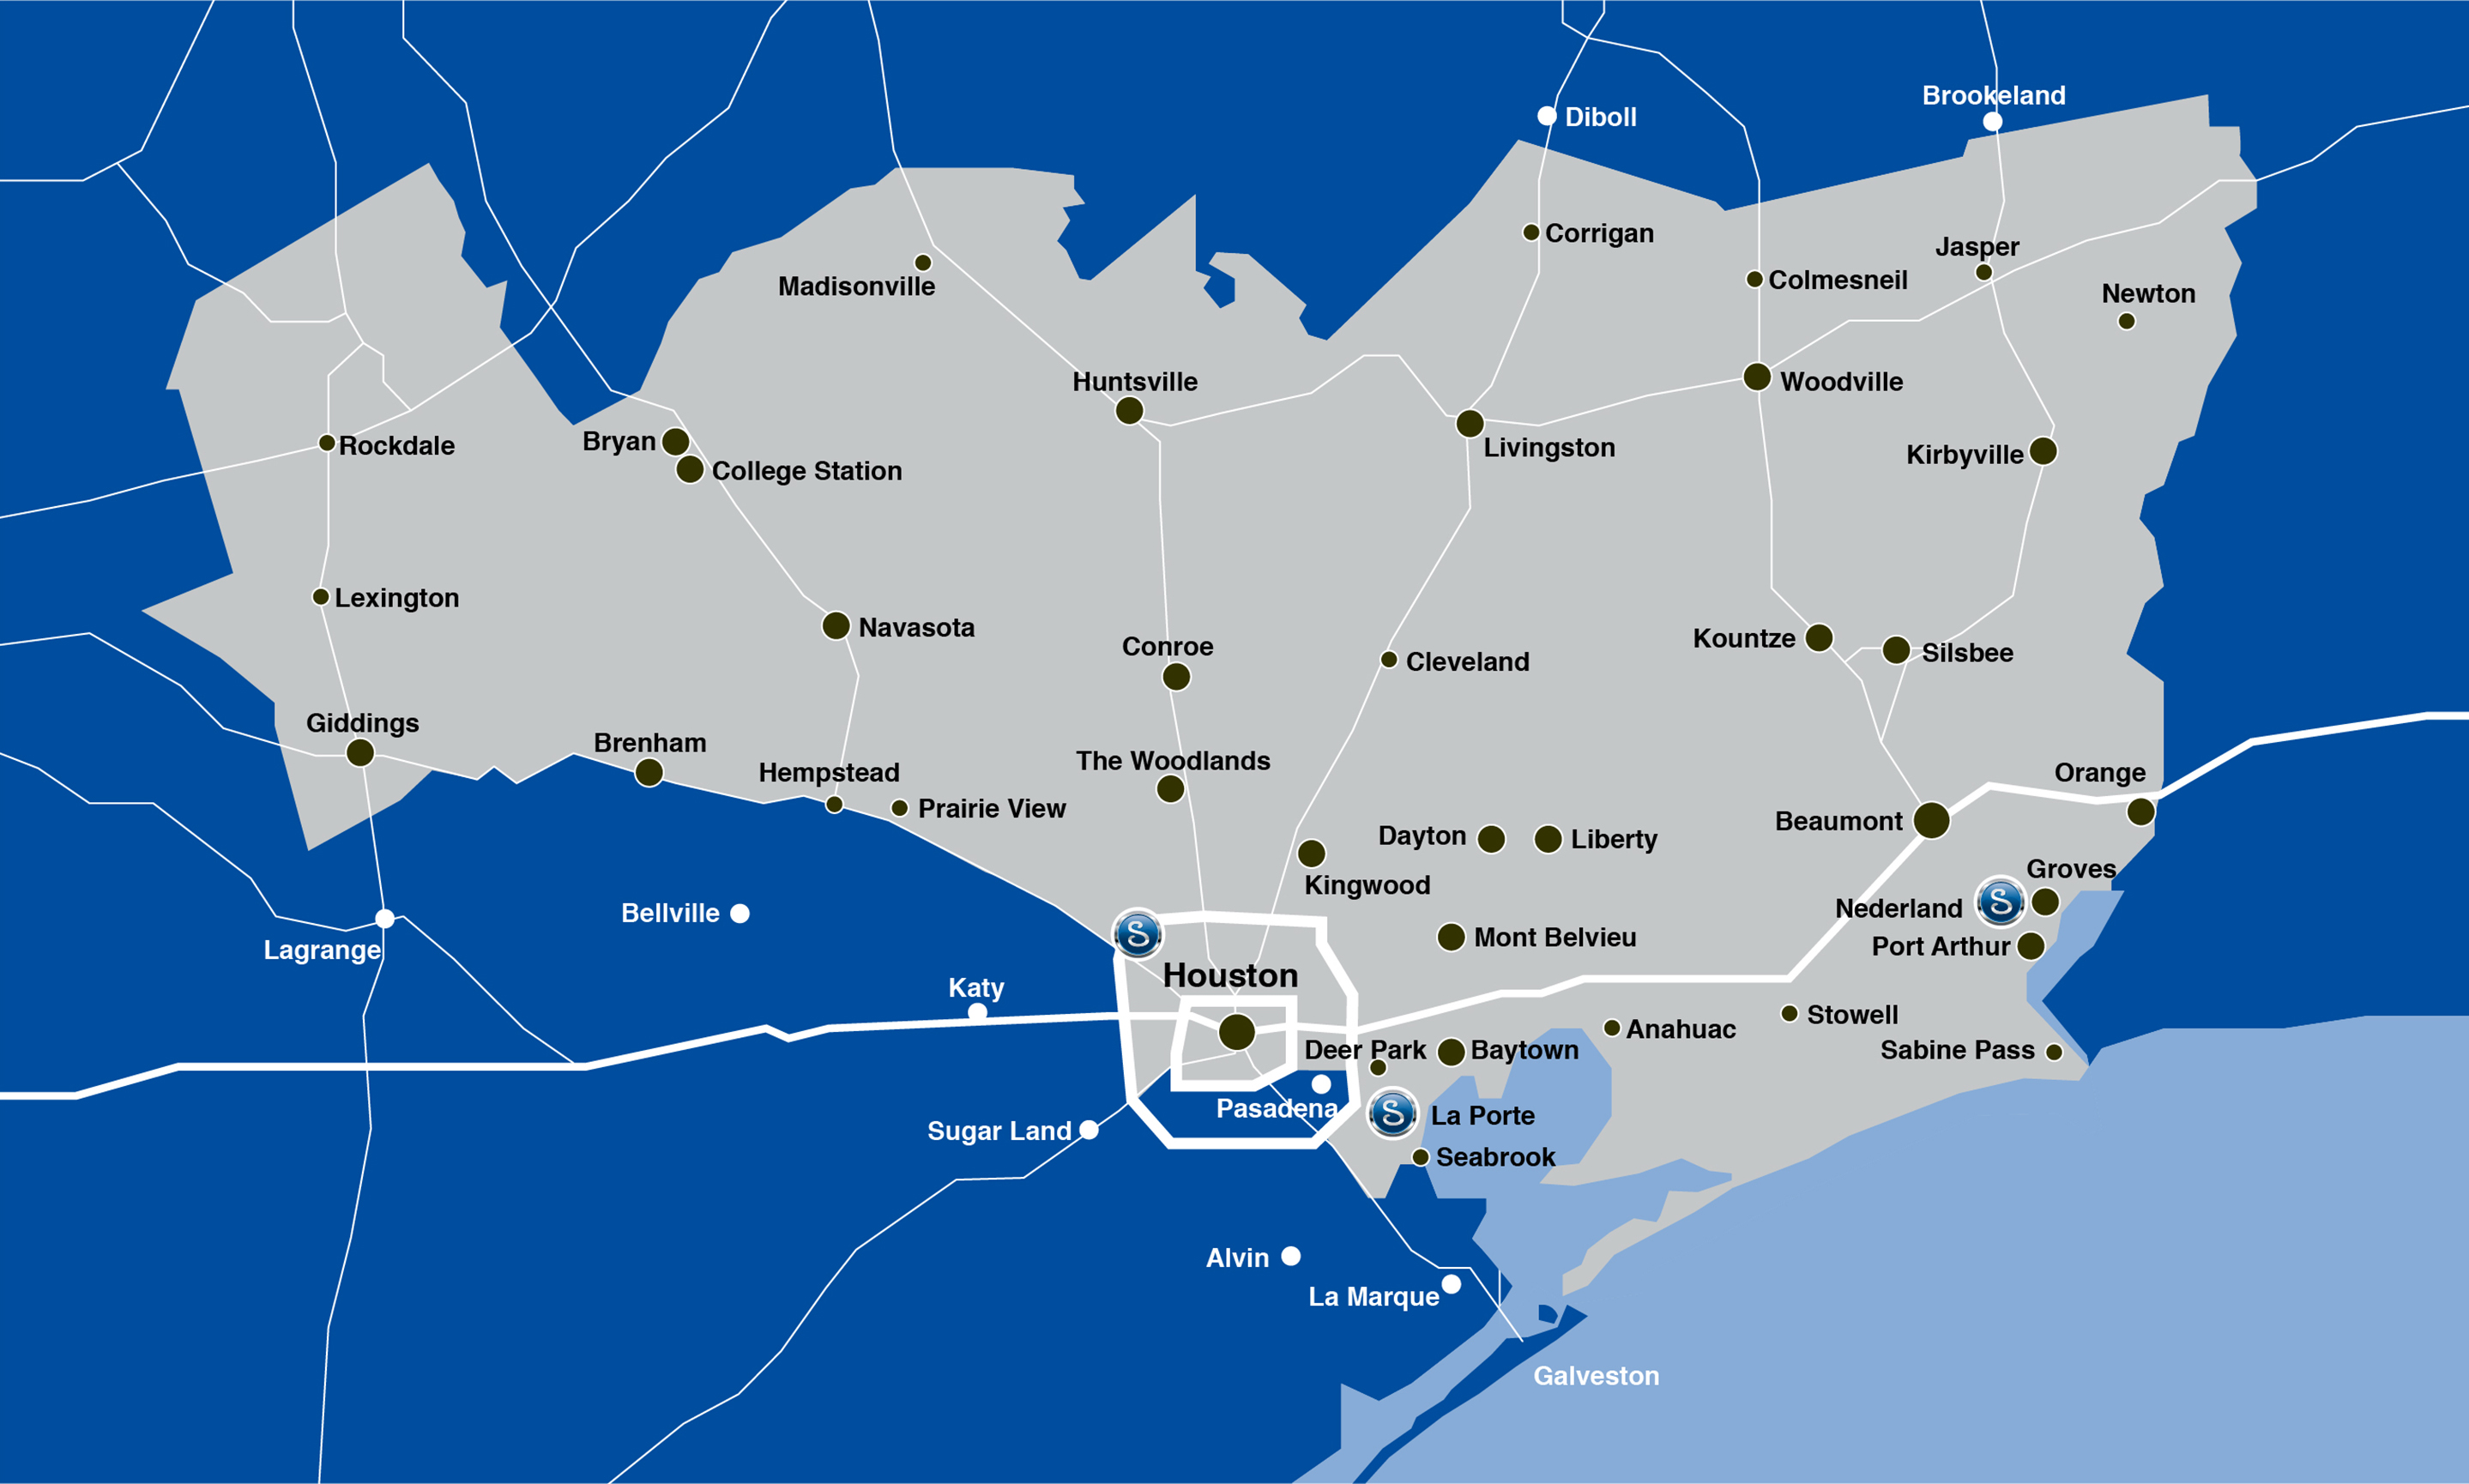 map of Swagelok Southeast Texas geographic footprint